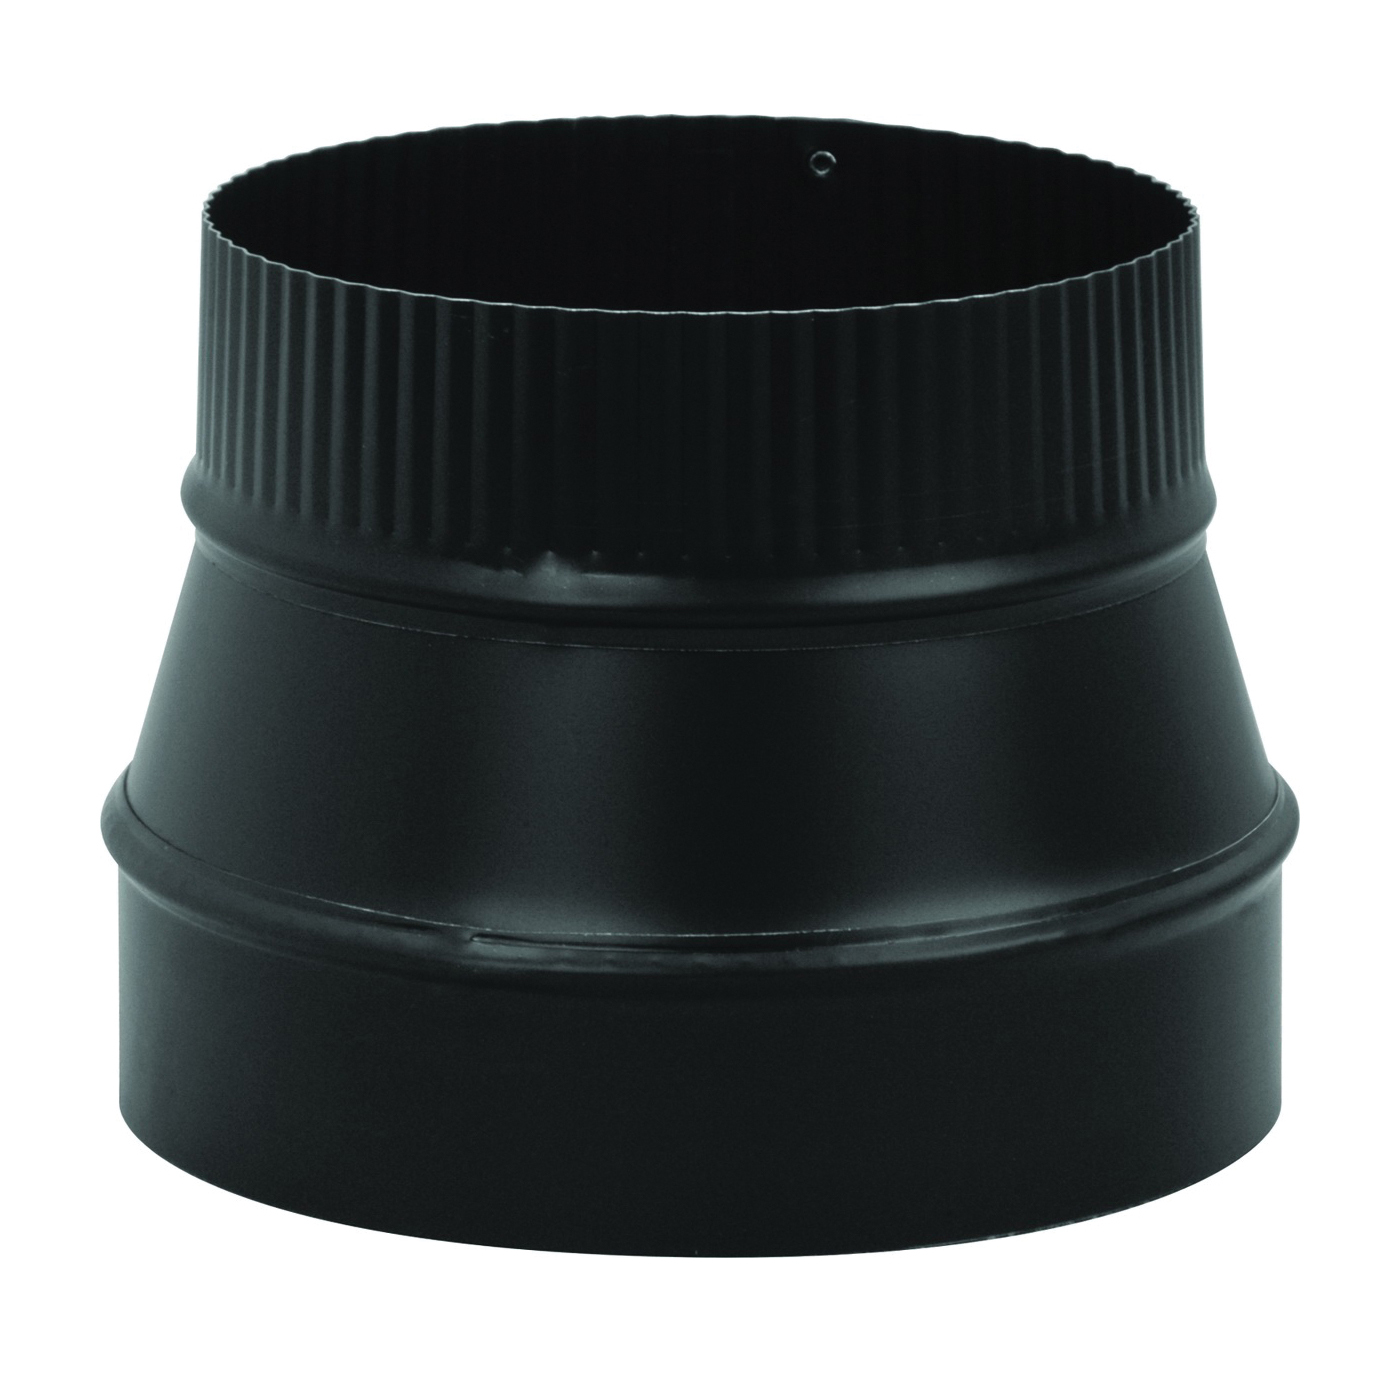 Picture of Imperial BM0074 Stove Pipe Reducer, 6 x 4 in, Crimp, 24 ga Thick Wall, Black, Matte